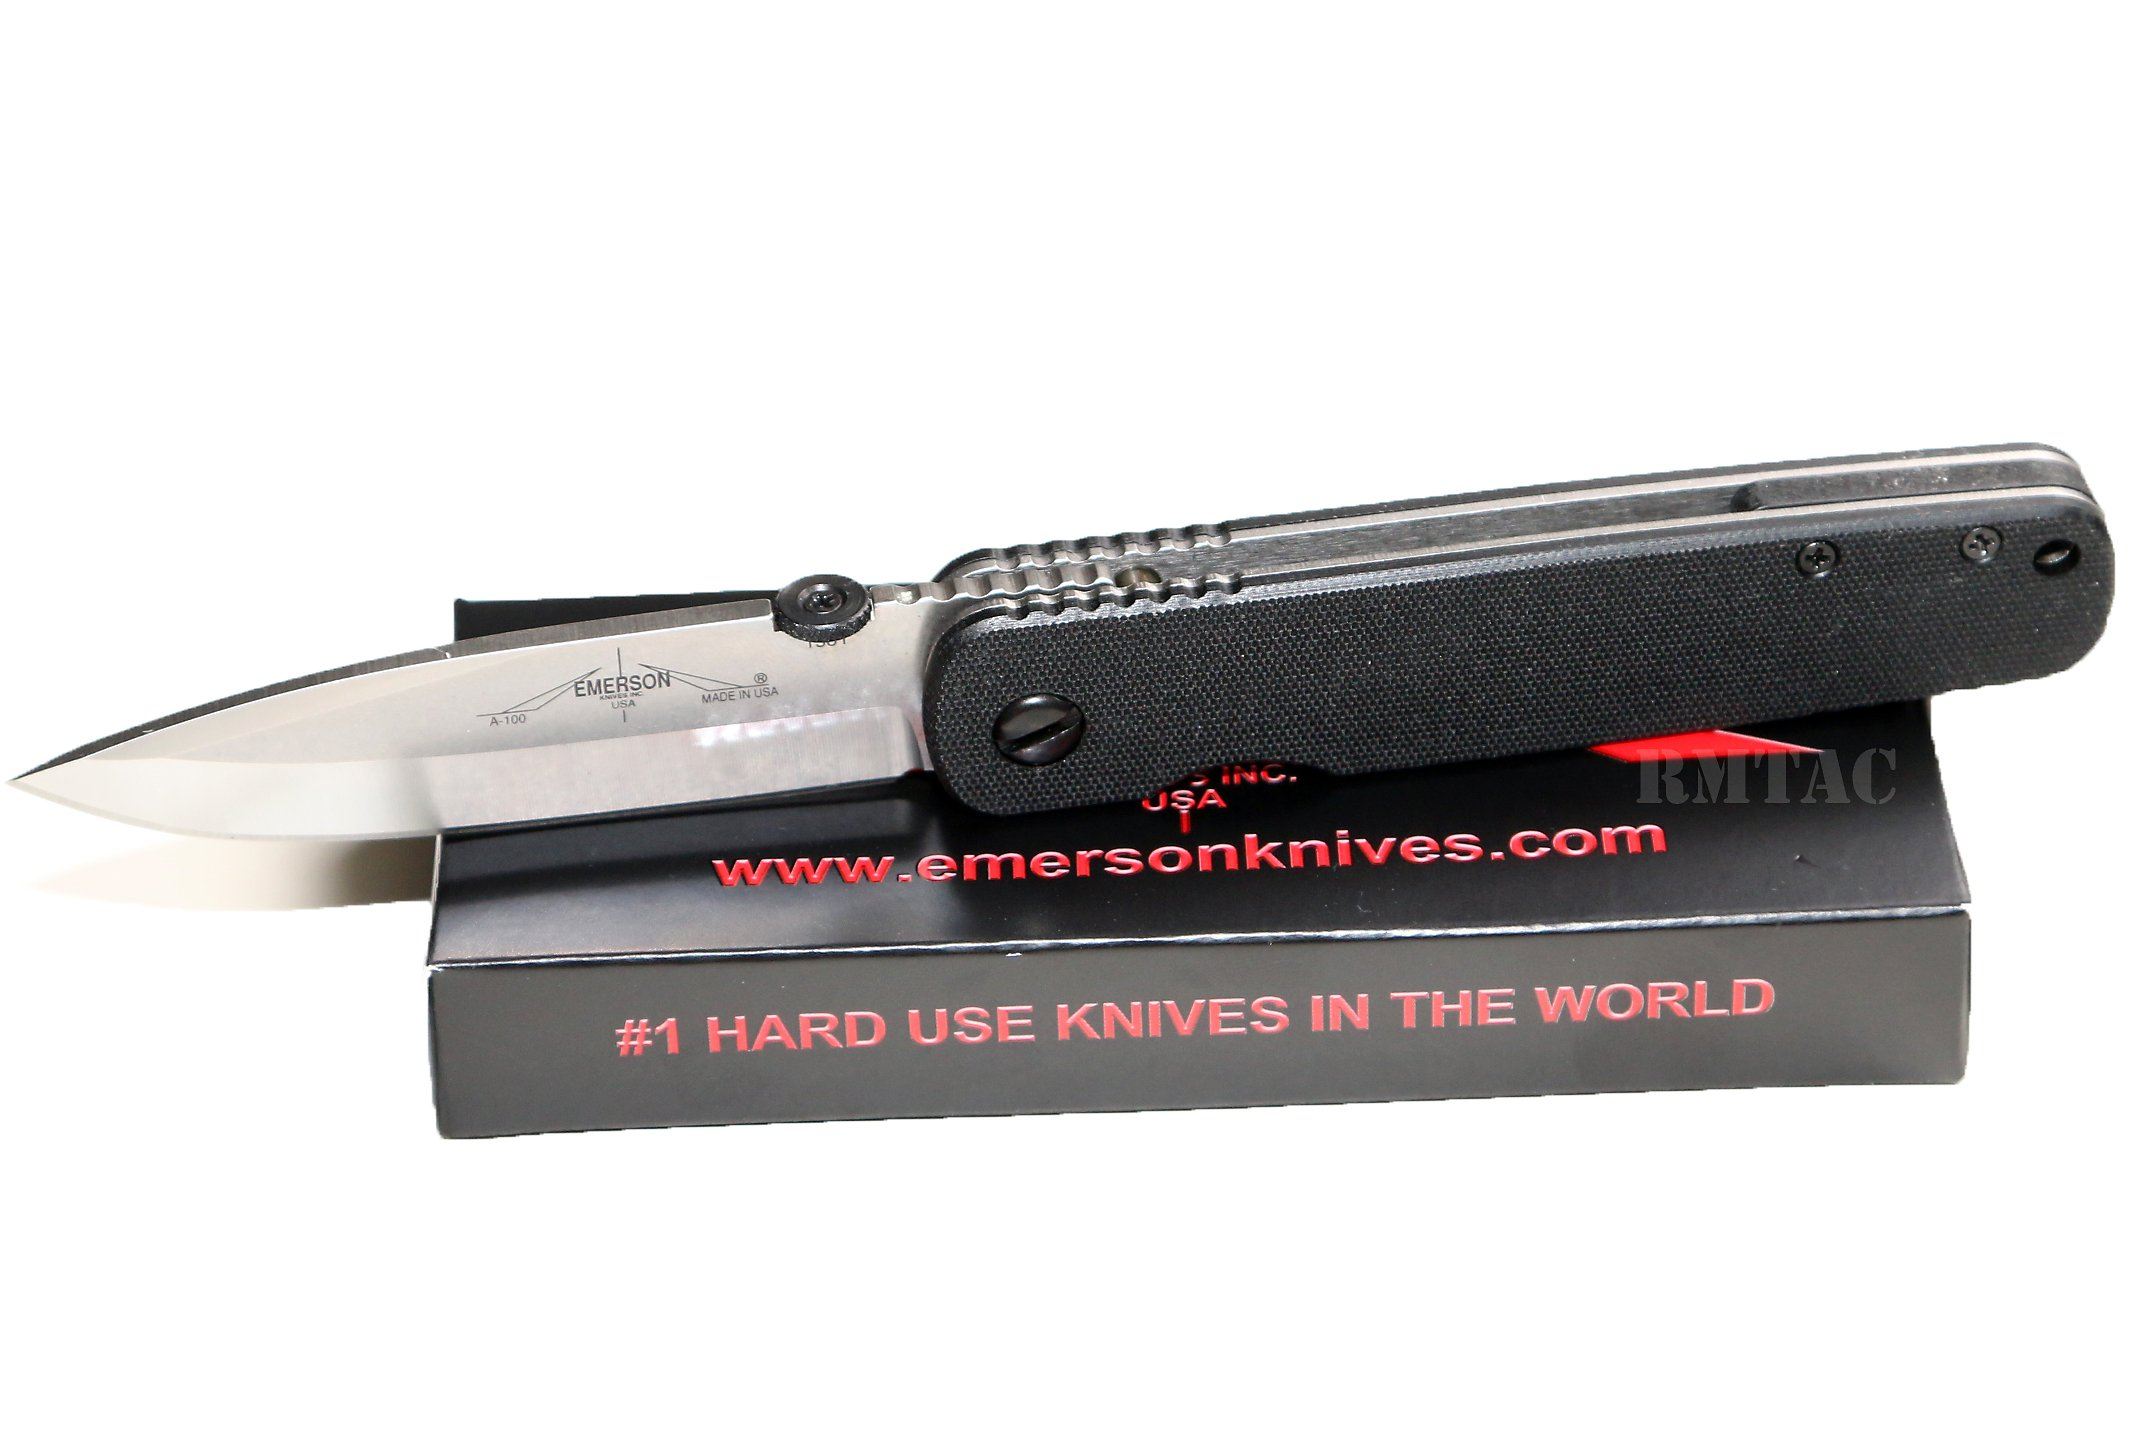 Emerson Knives Gentleman Folder A-100 Satin Blade Razor Pocket Knife